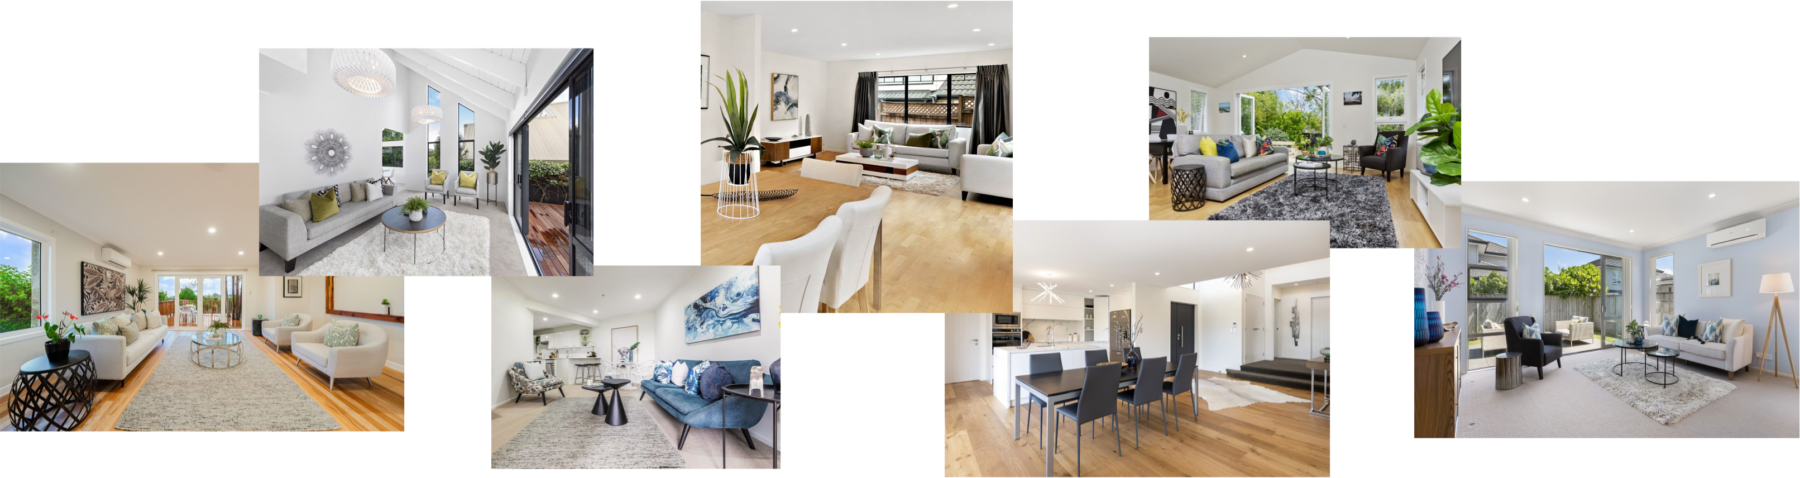 home staging modern contemporary colourful home styling with designer accessories